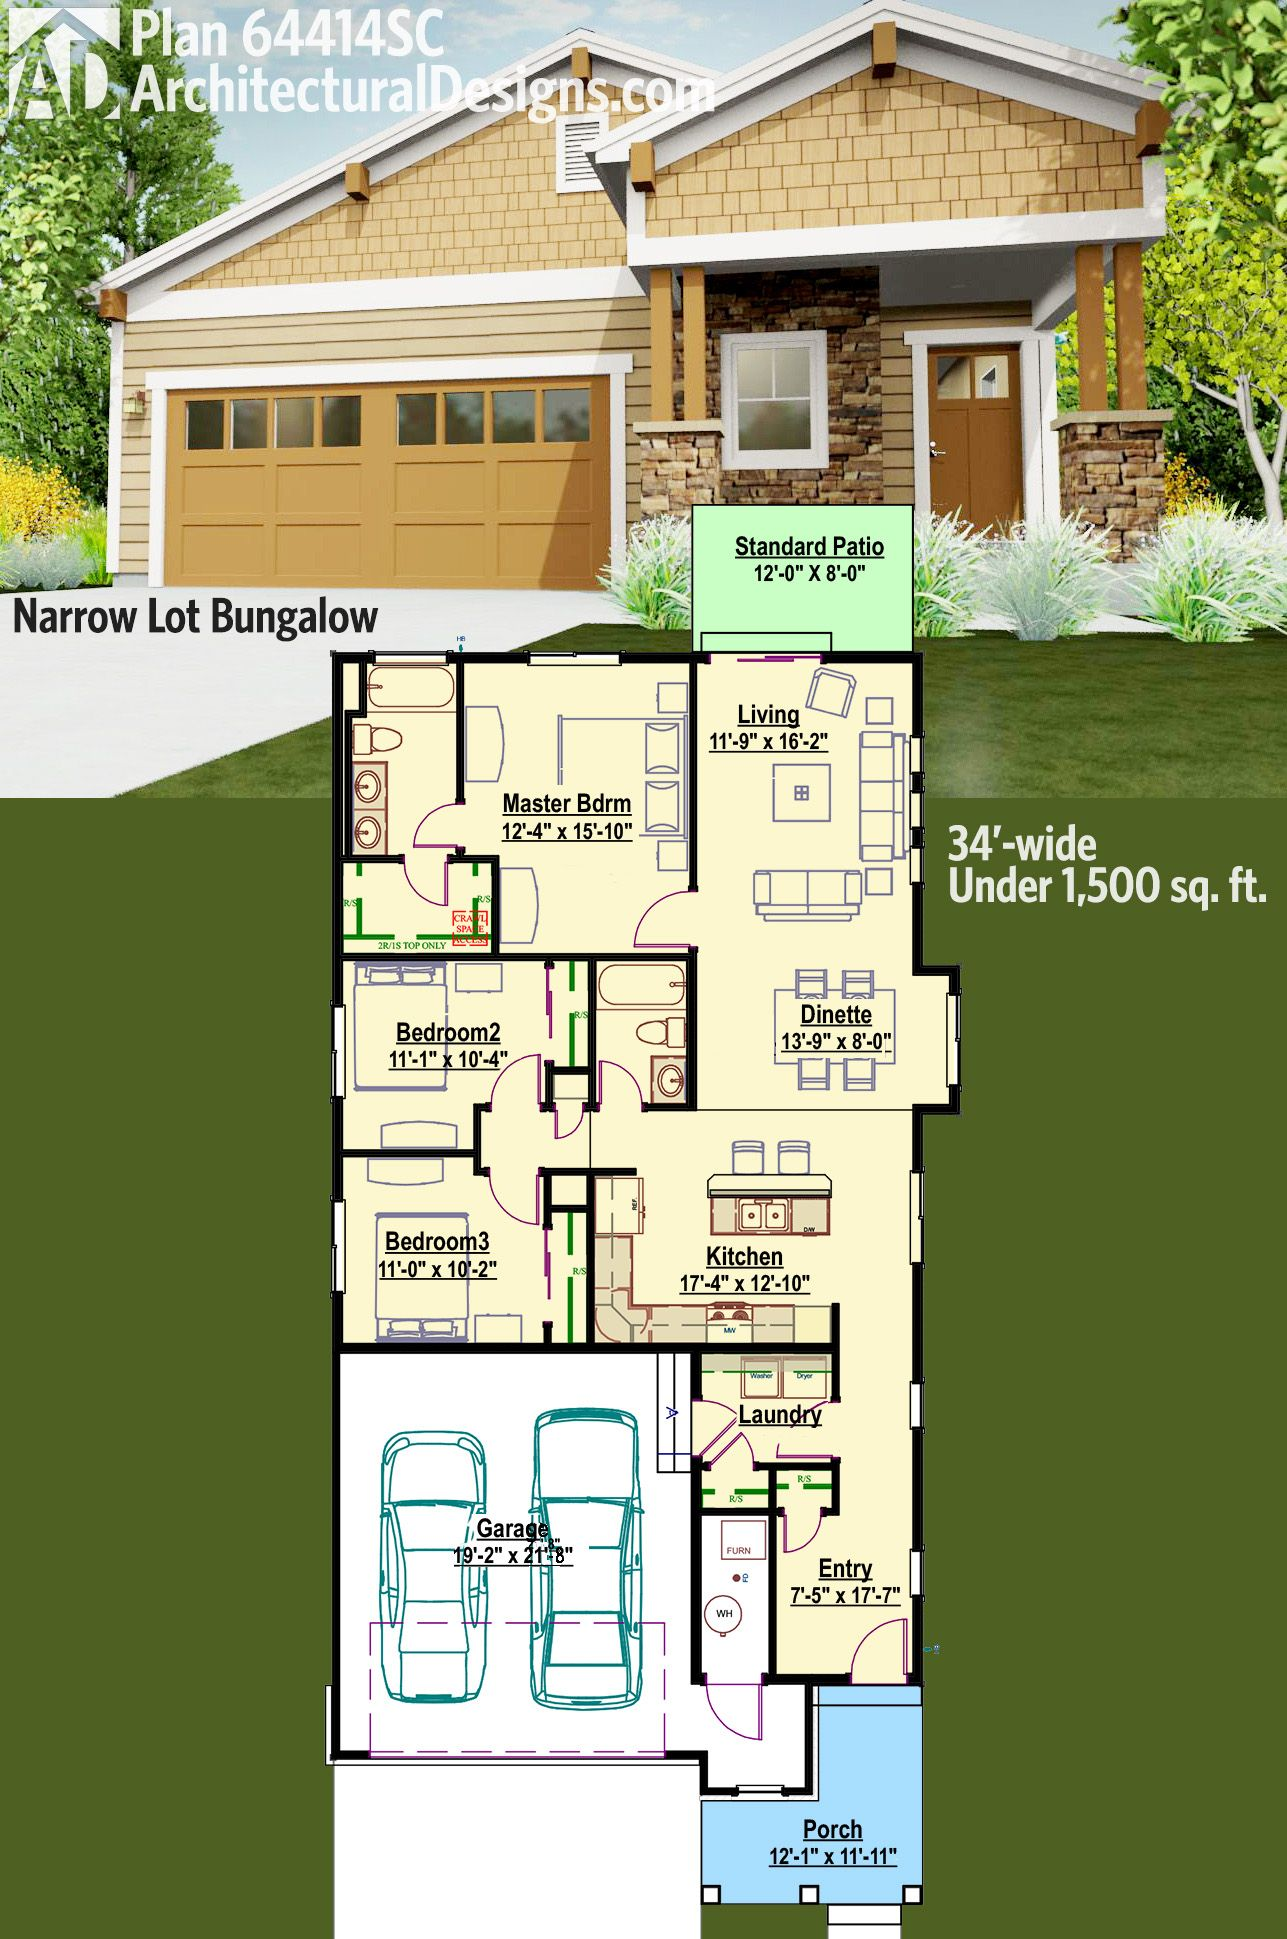 Plan 64414sc Narrow Lot Bungalow In 2020 Bungalow House Plans Dream House Plans Bungalow Style House Plans